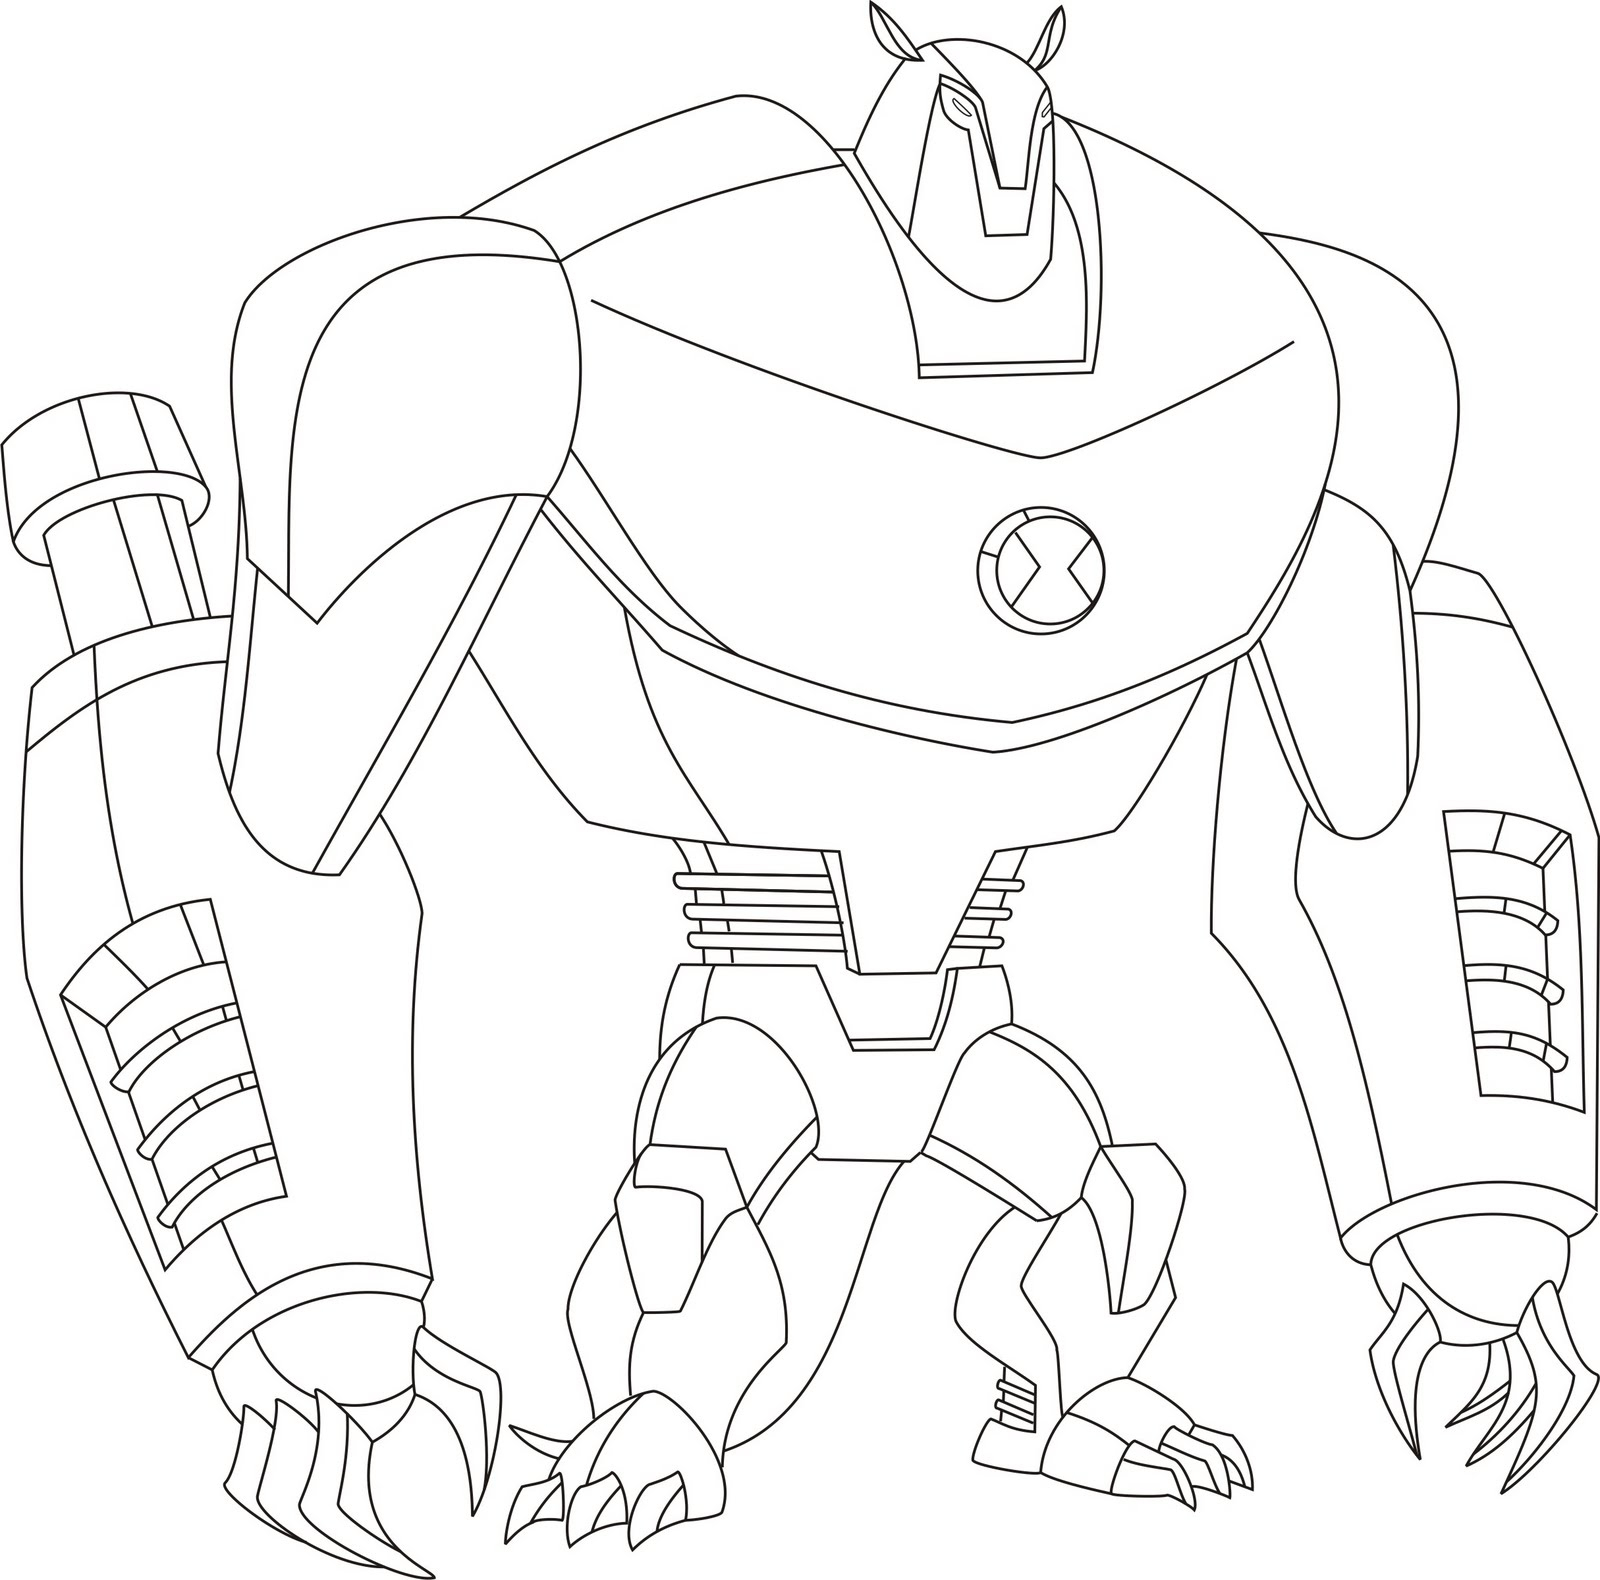 1600x1580 Ben 10 Drawing Book Free Coloring Page For Kids